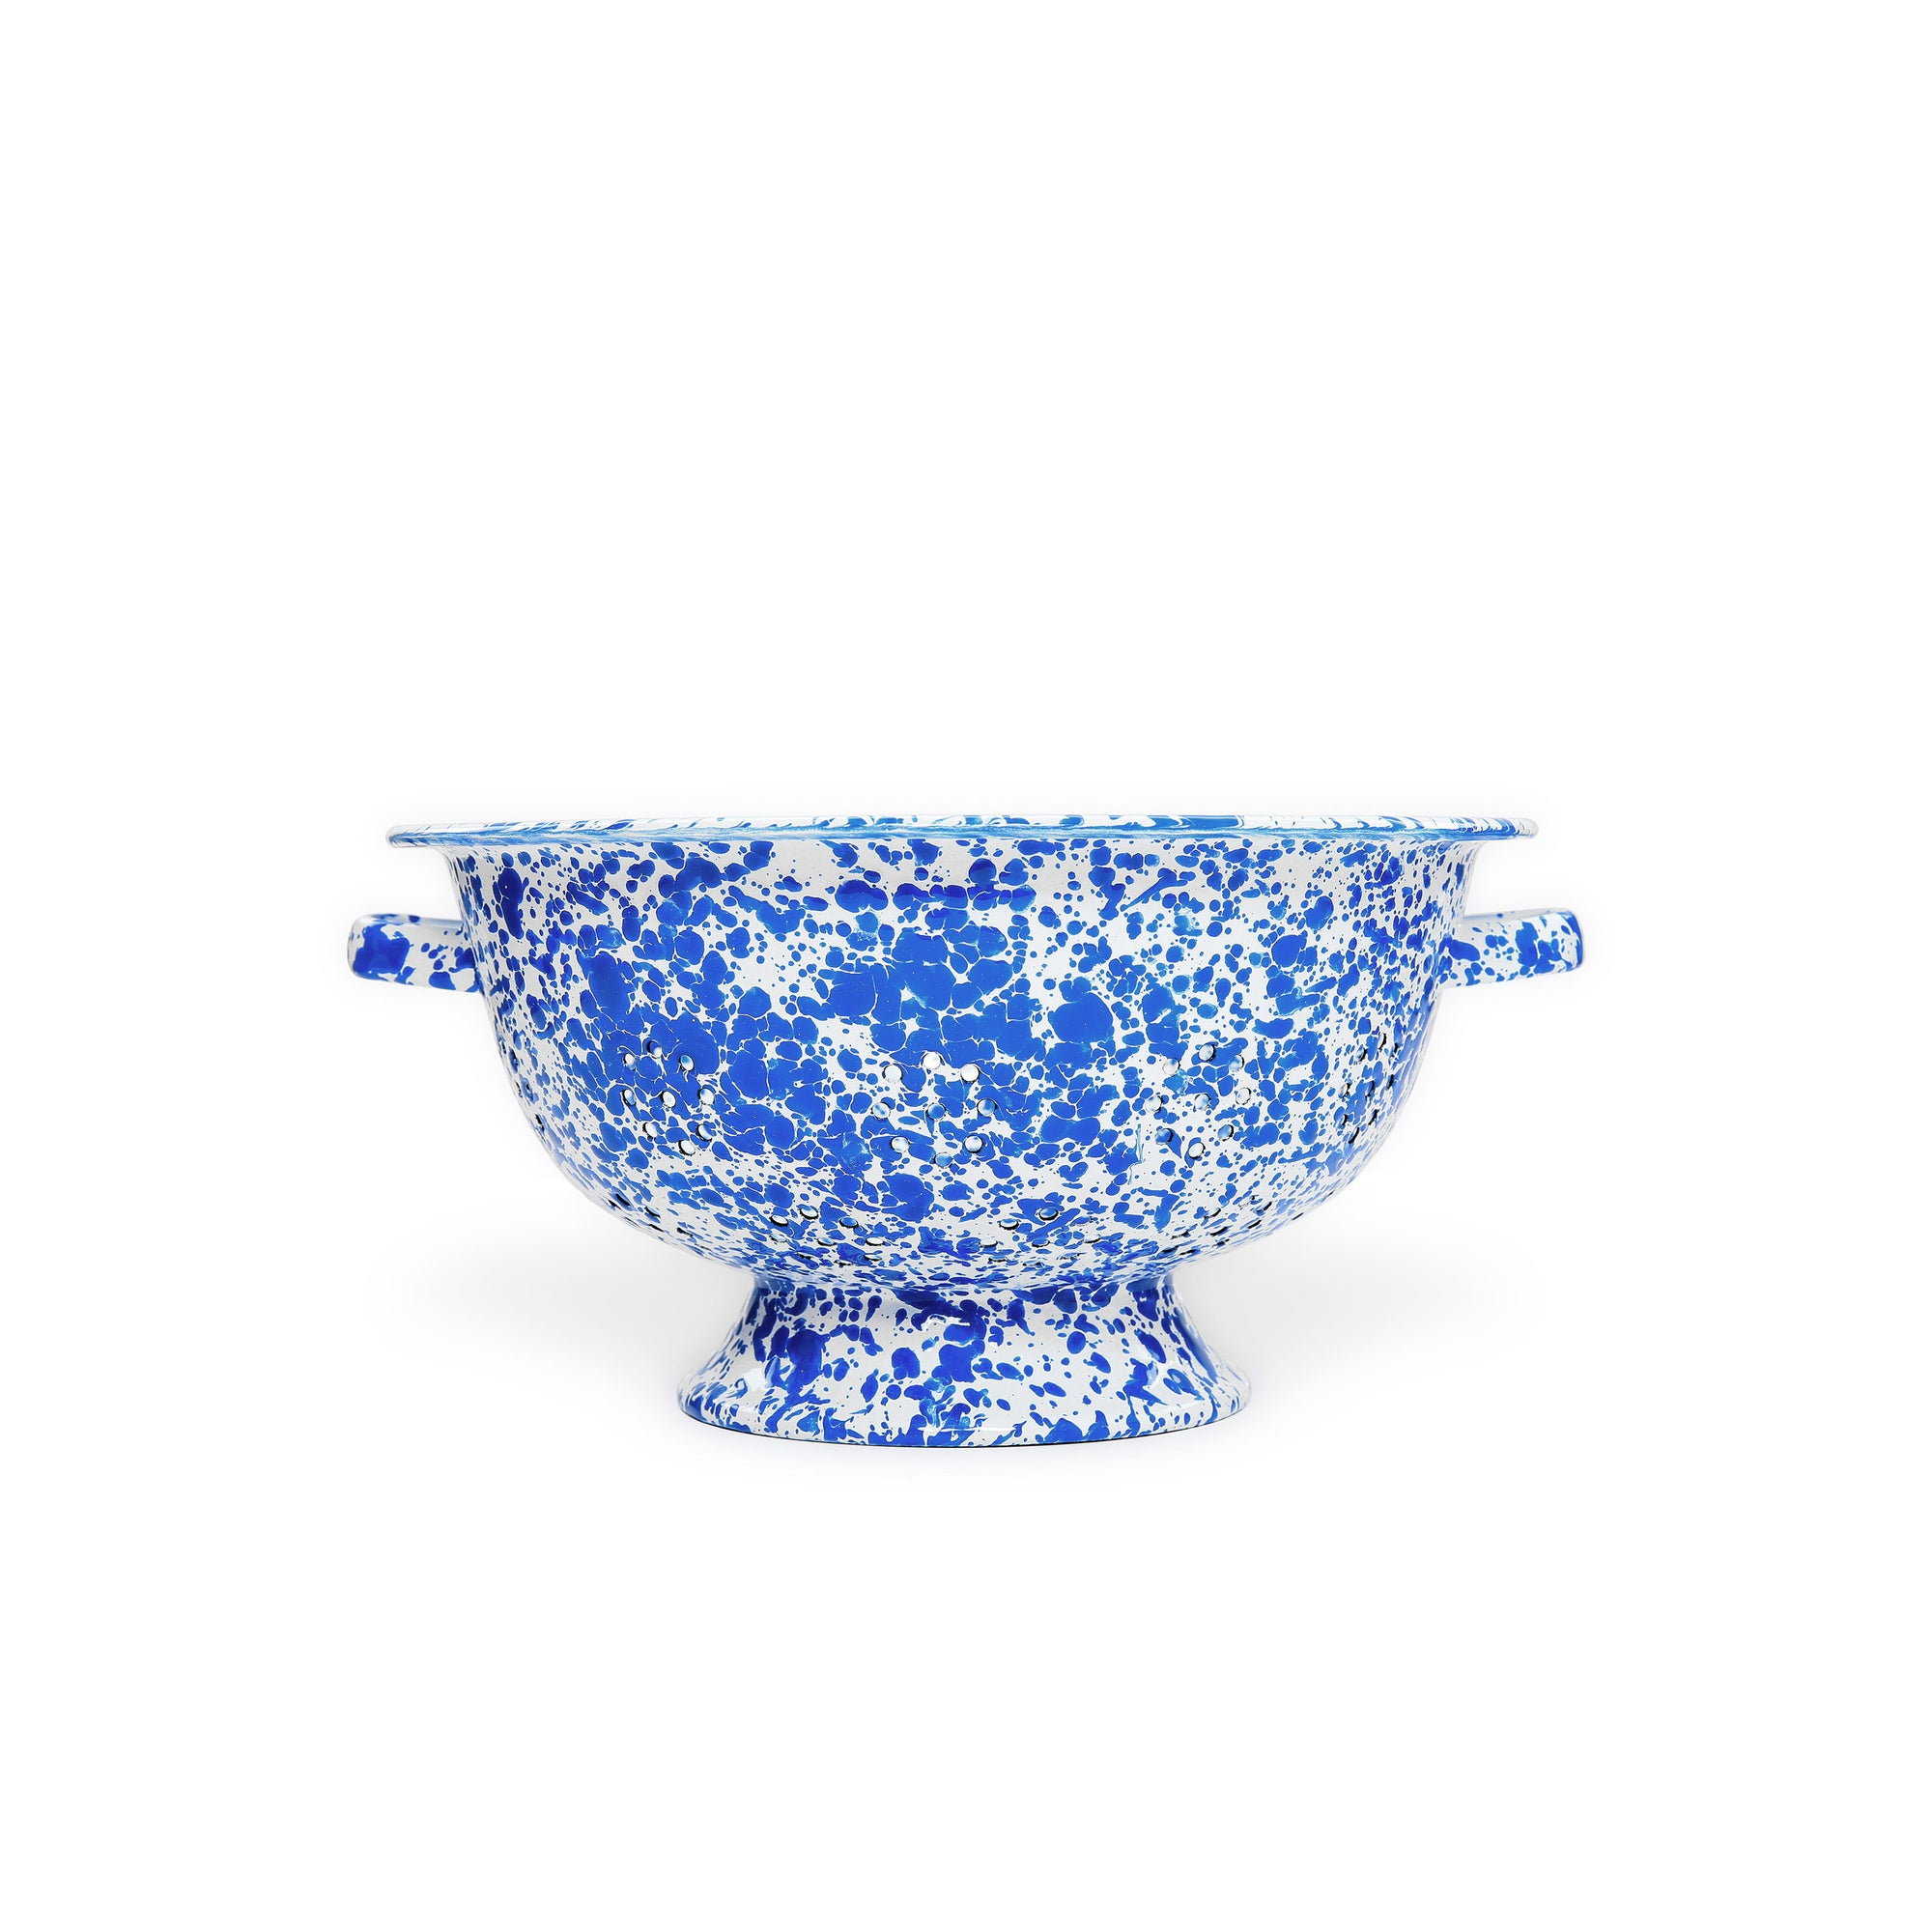 Splatterware - Large Colander Blue